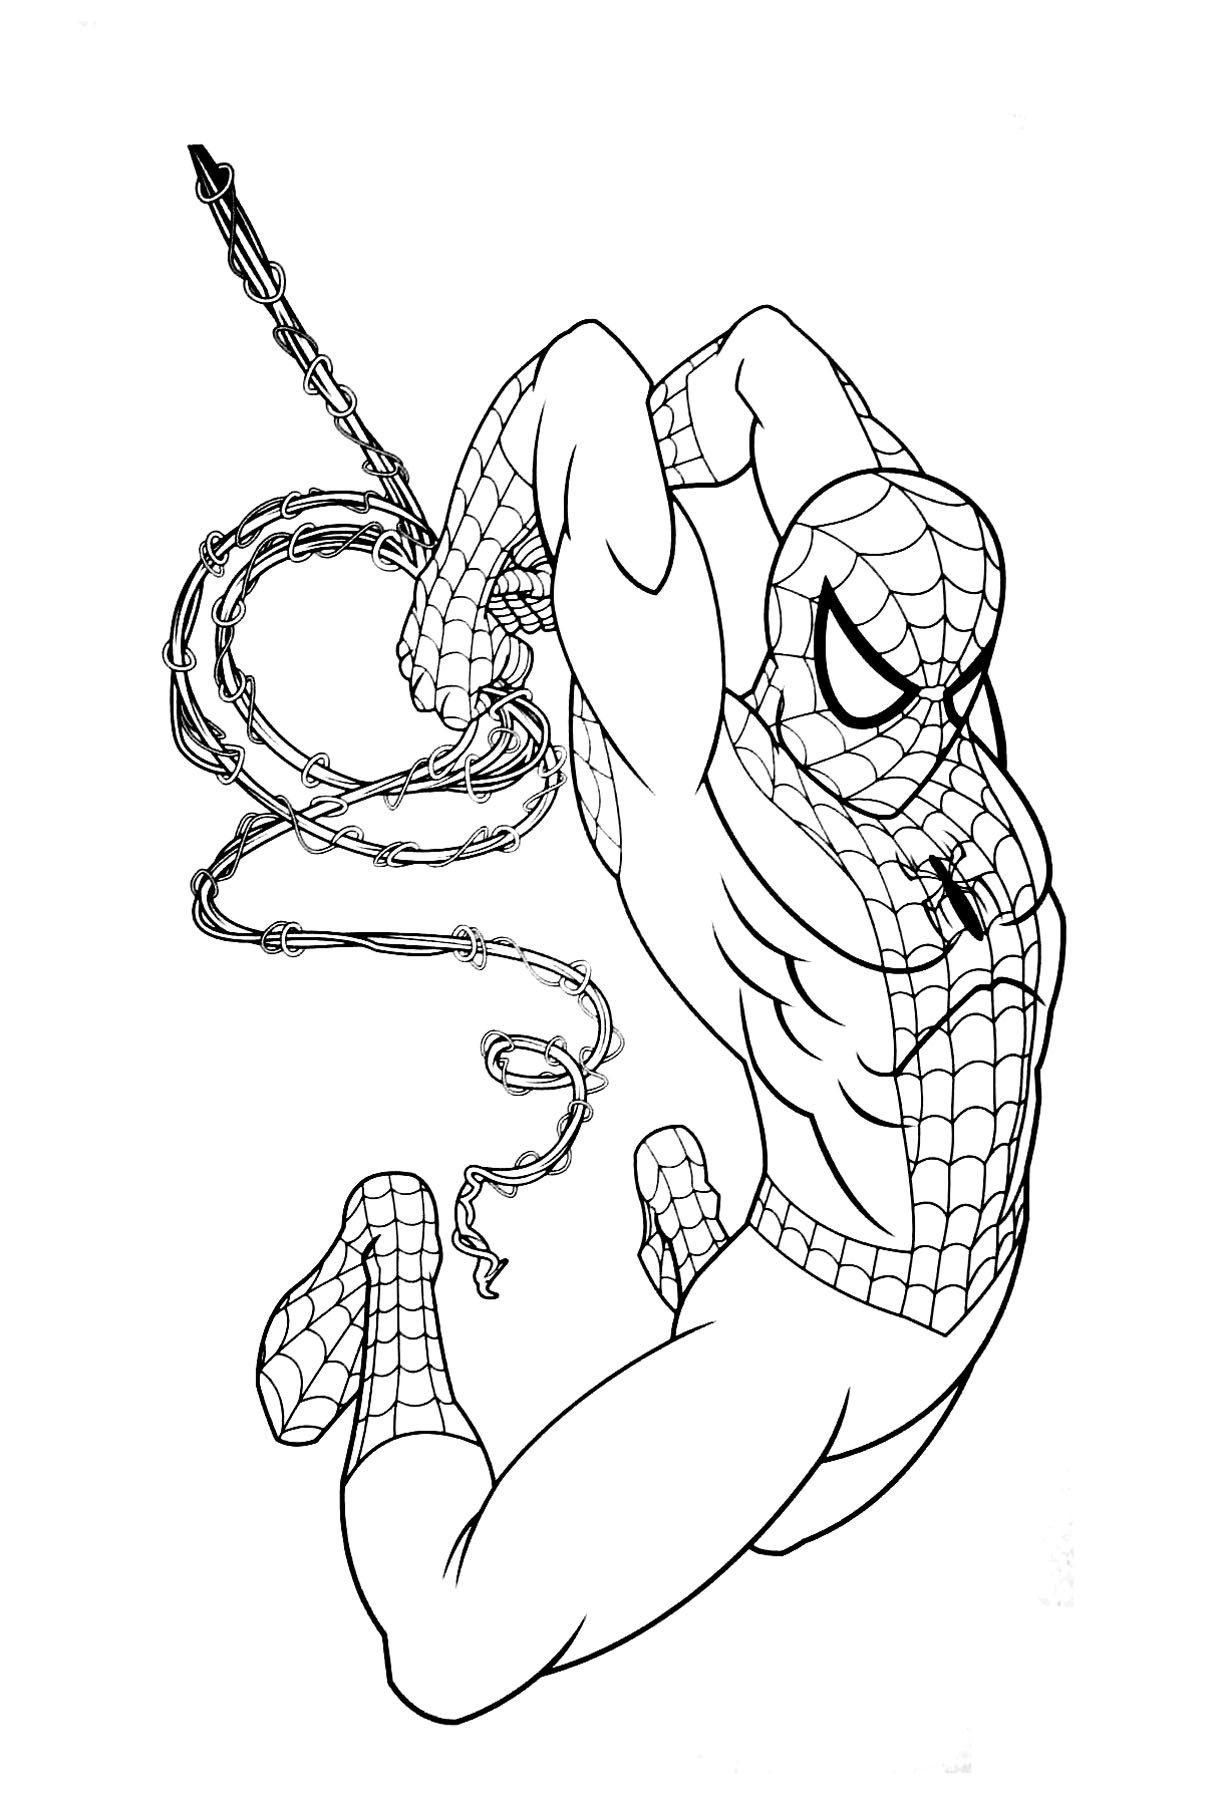 spiderman coloring pages easy spiderman coloring pages easy pages easy coloring spiderman